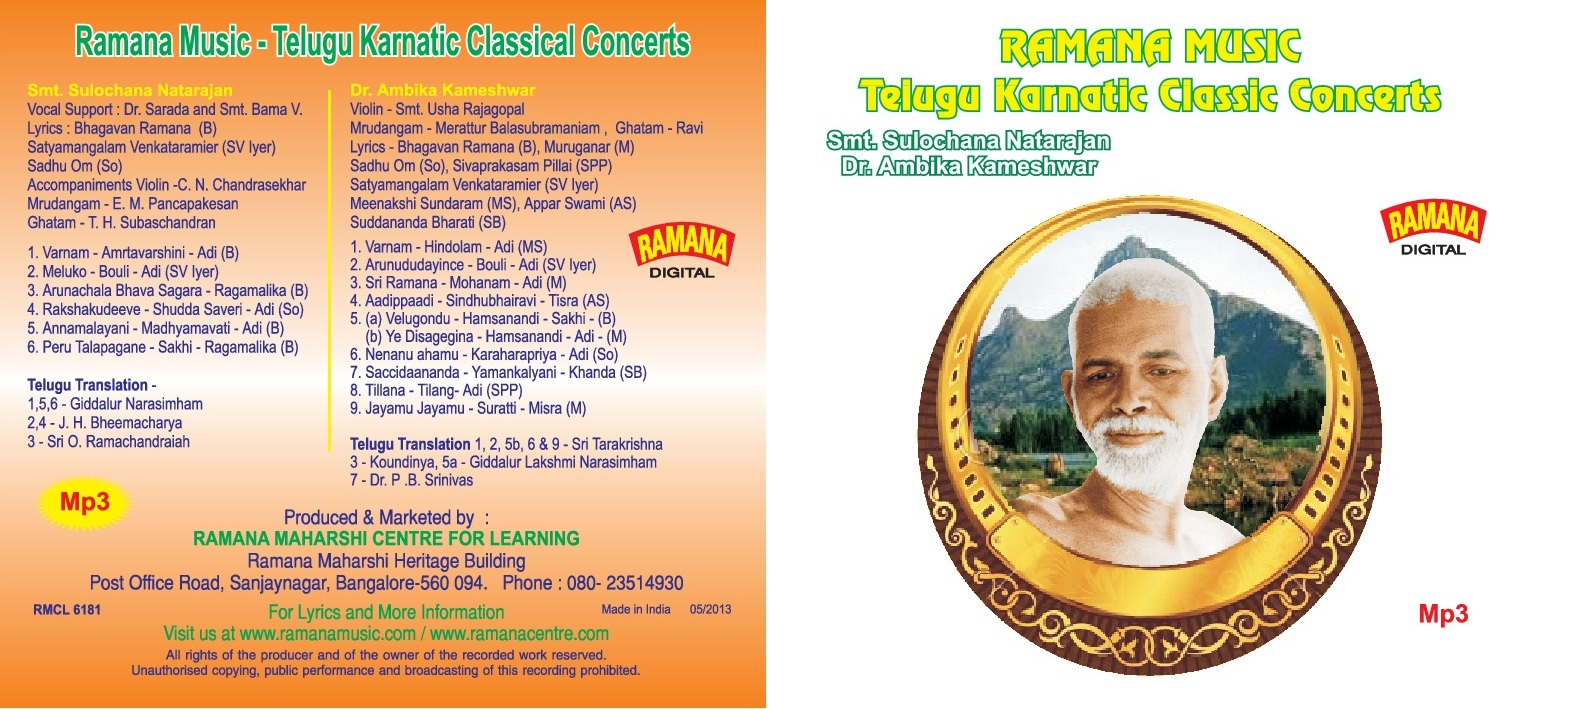 04 Ramana Music Telugu Smt SN and Dr AK